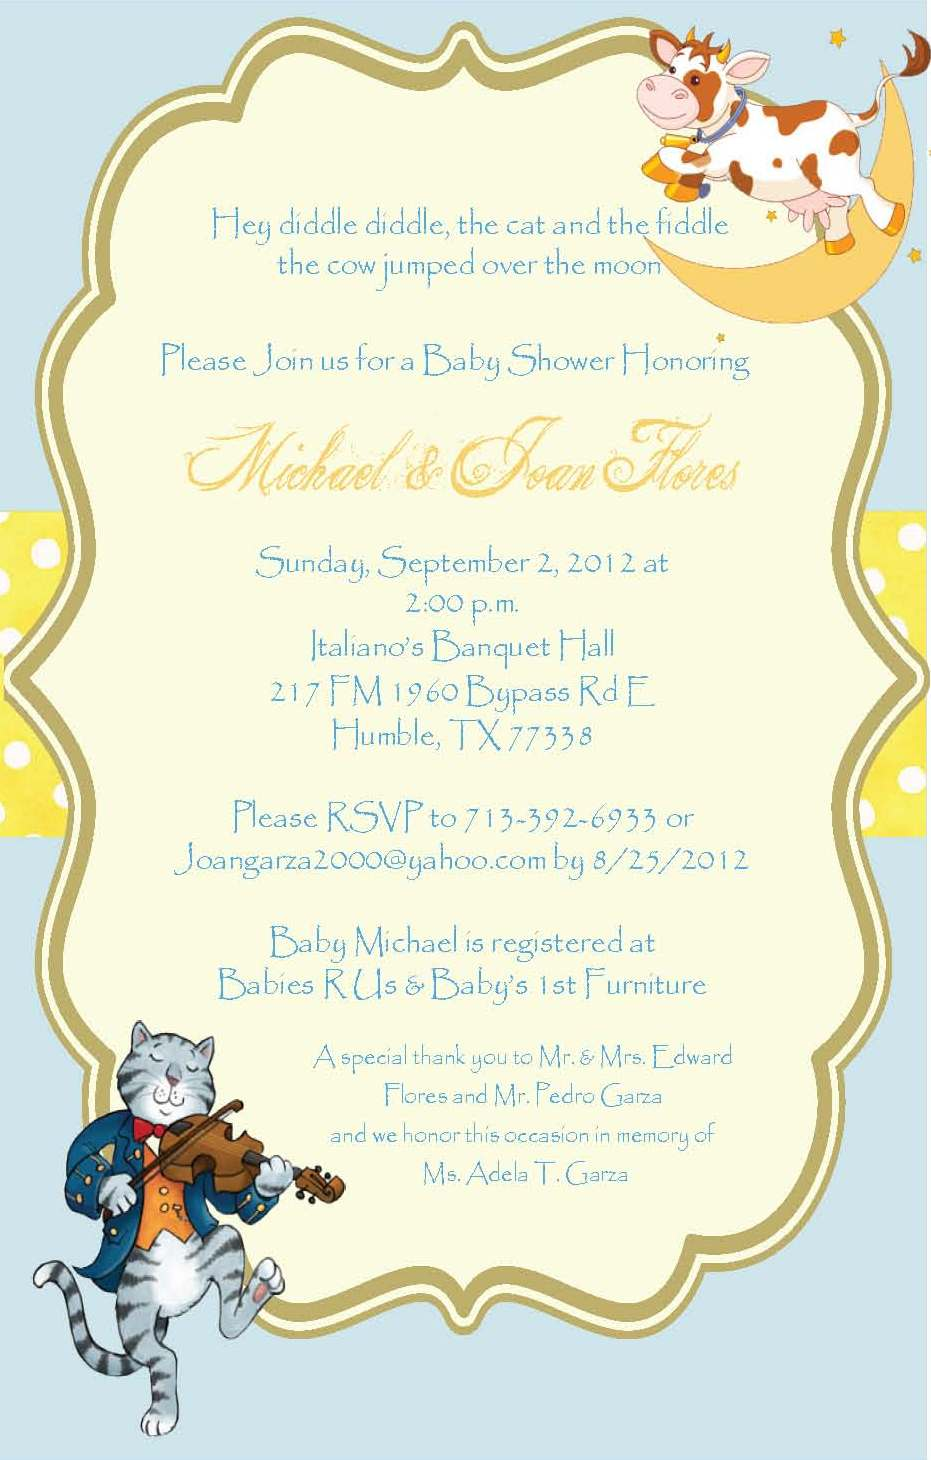 monkeys and more nursery rhyme baby shower invitations